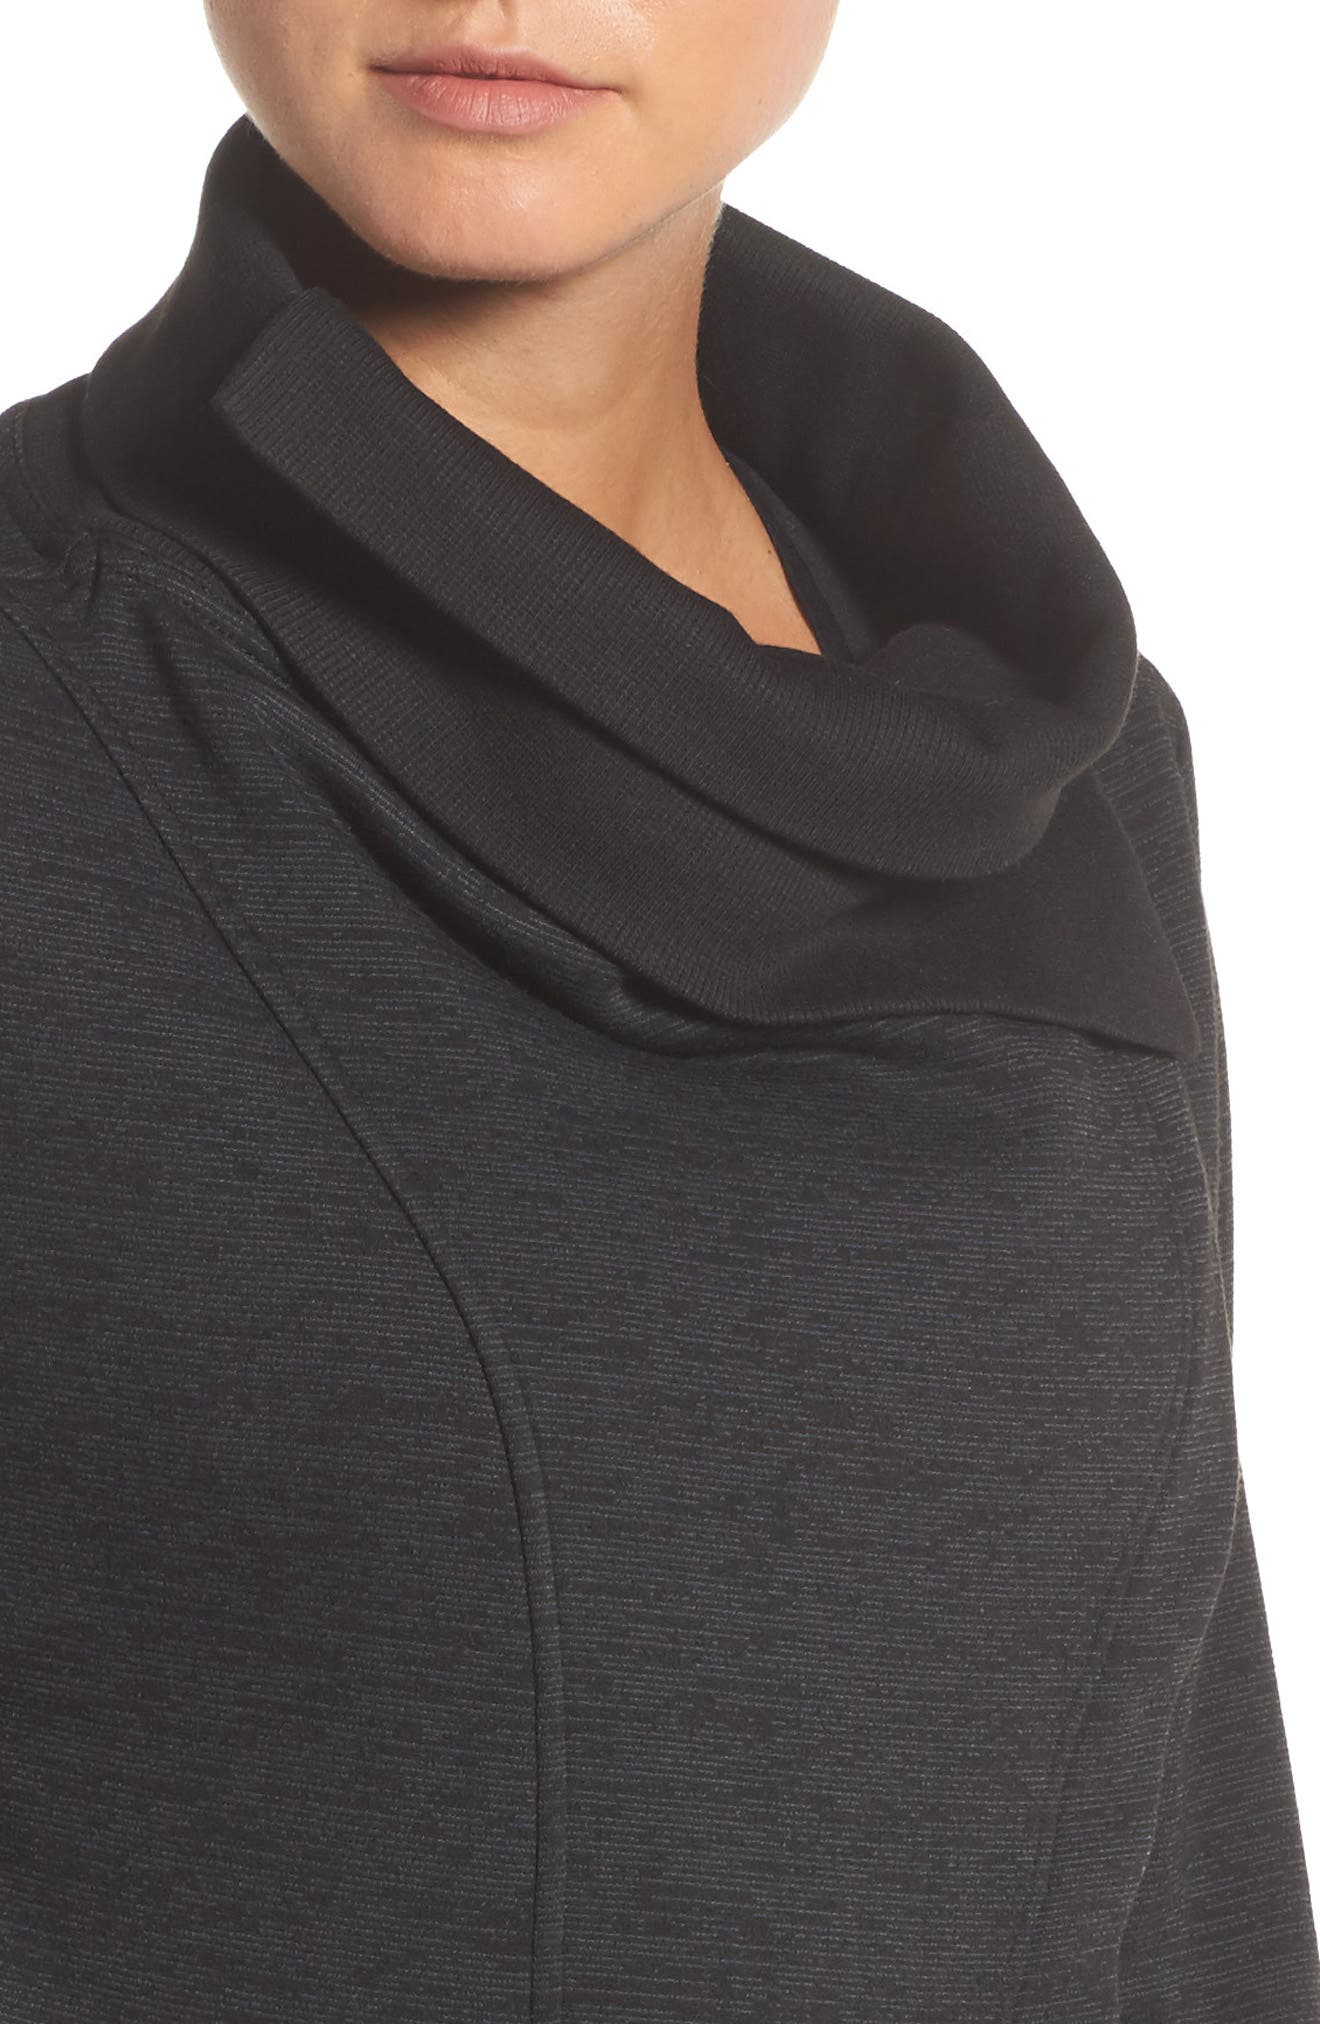 Alternate Image 4  - Zella Elevate Me Wrap Sweatshirt